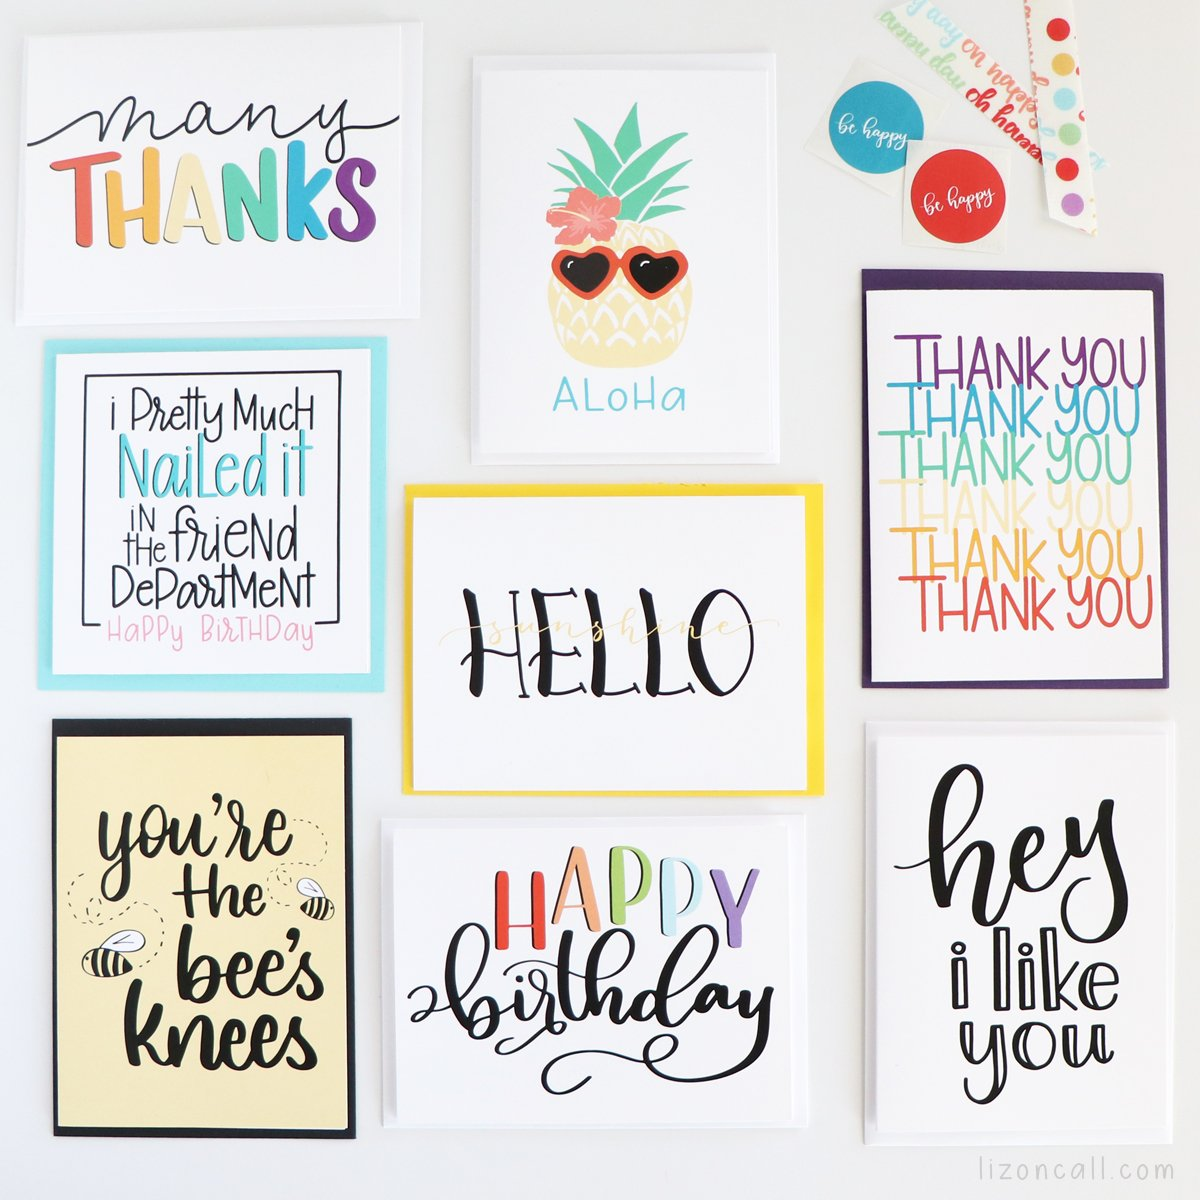 Sending a quick note to a friend or family member for any occasion just got easier with these Hand Lettered Cards. Variety pack with Birthday, thank you and everyday cards.